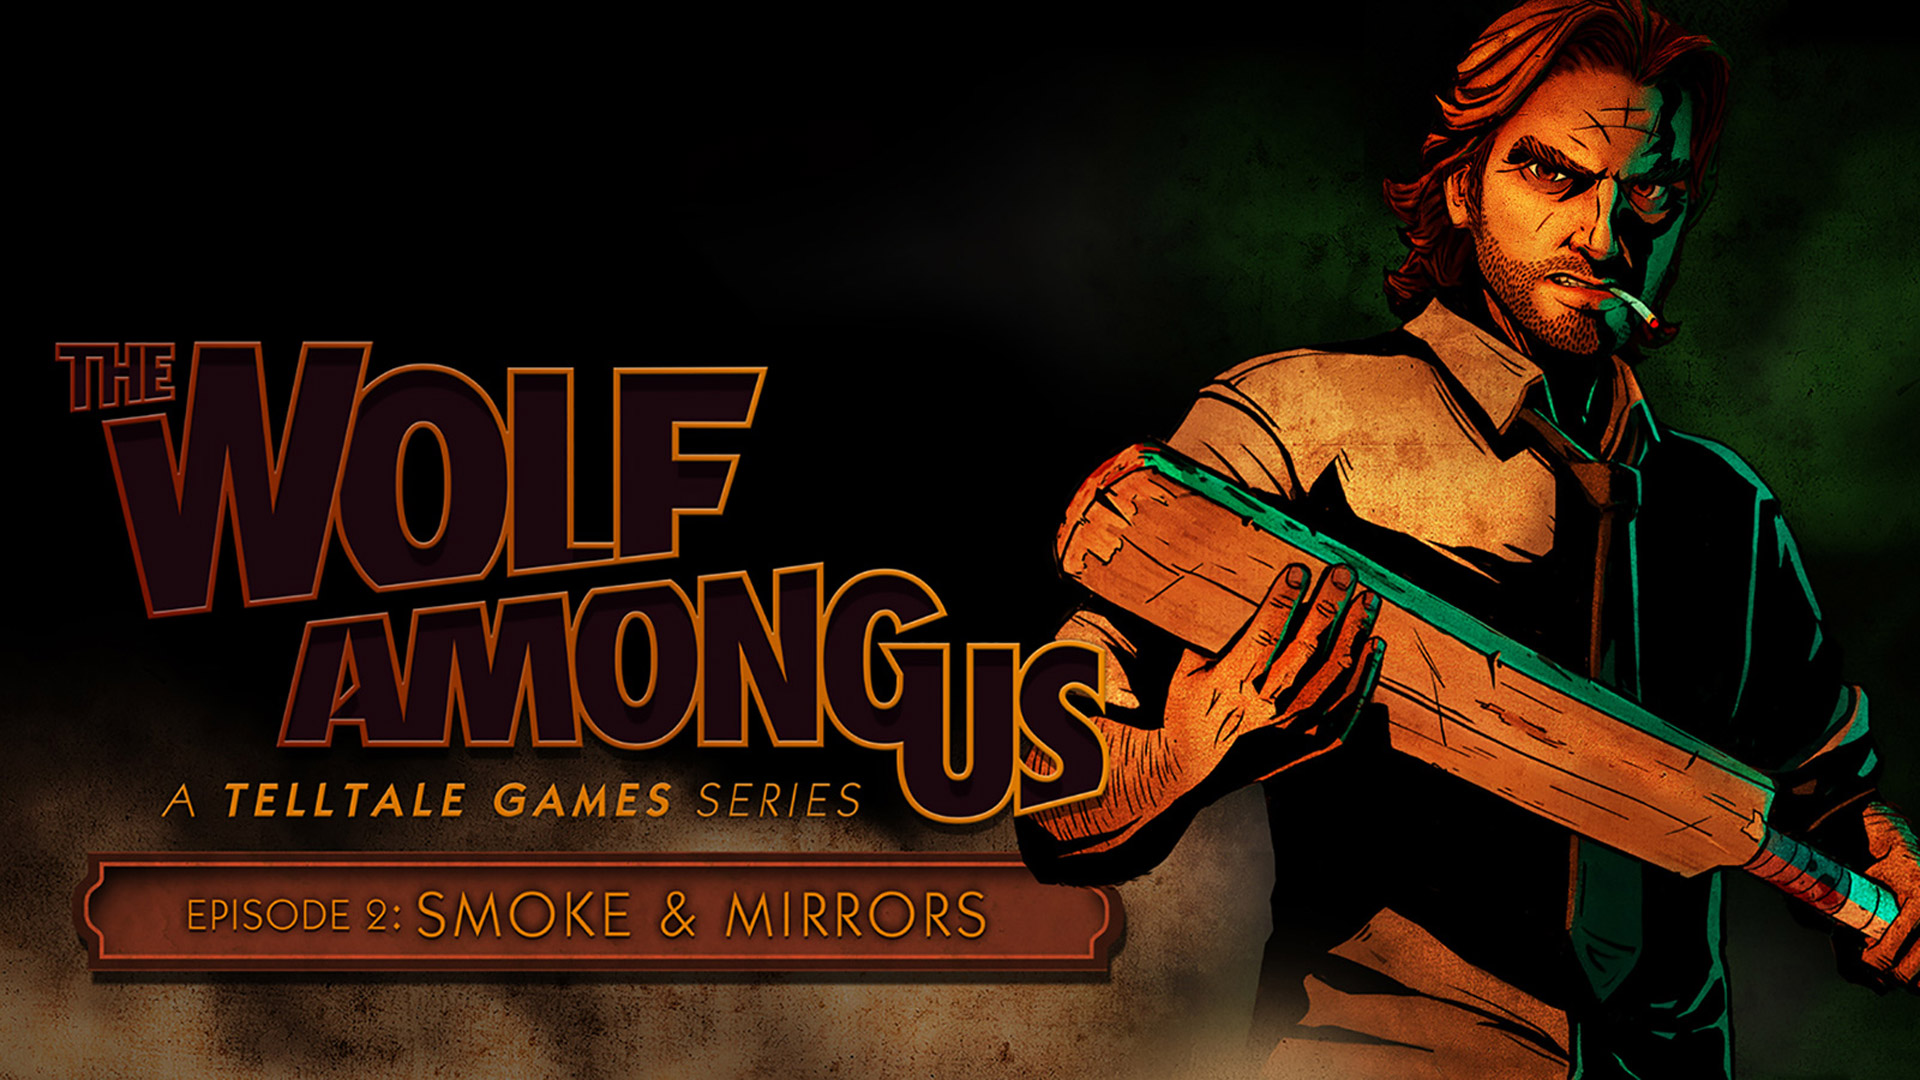 The Wolf Among Us Wallpaper 1